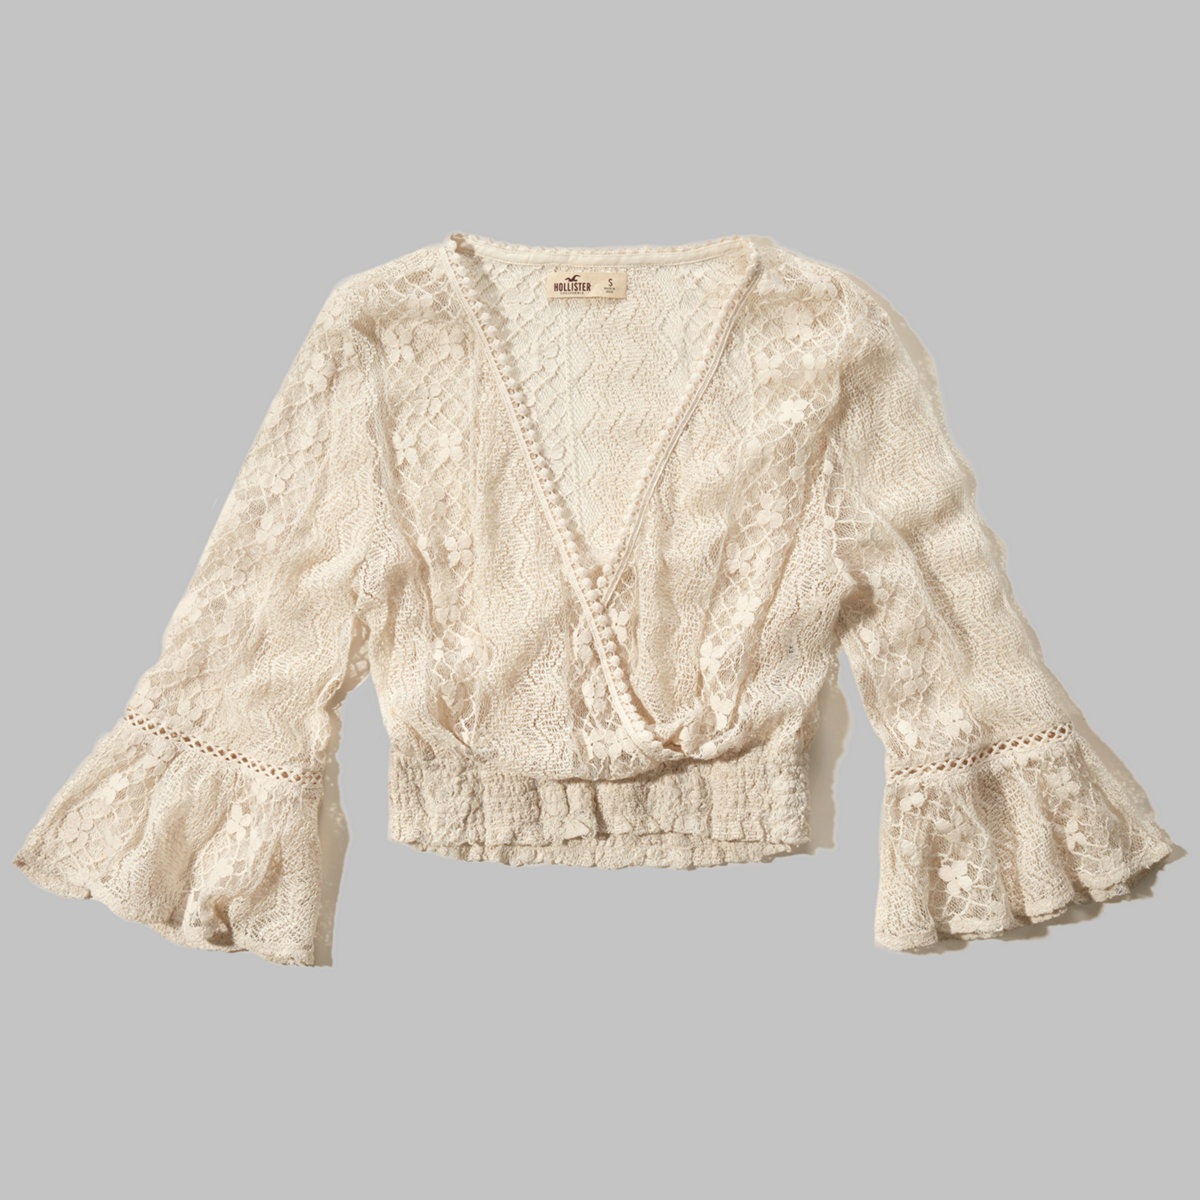 Lace Wrap Front Peasant Blouse